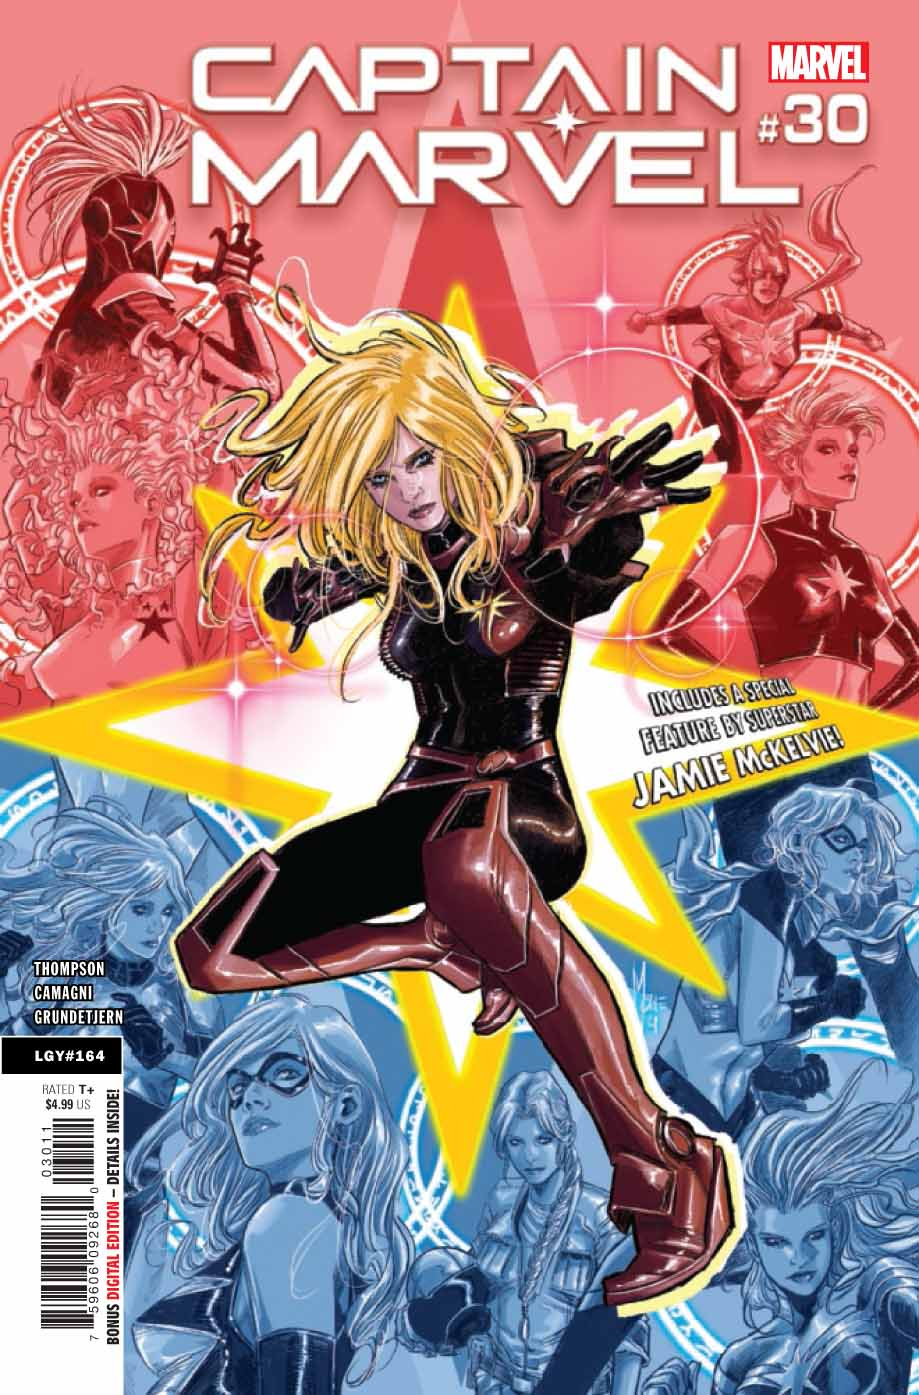 captainmarvel30a